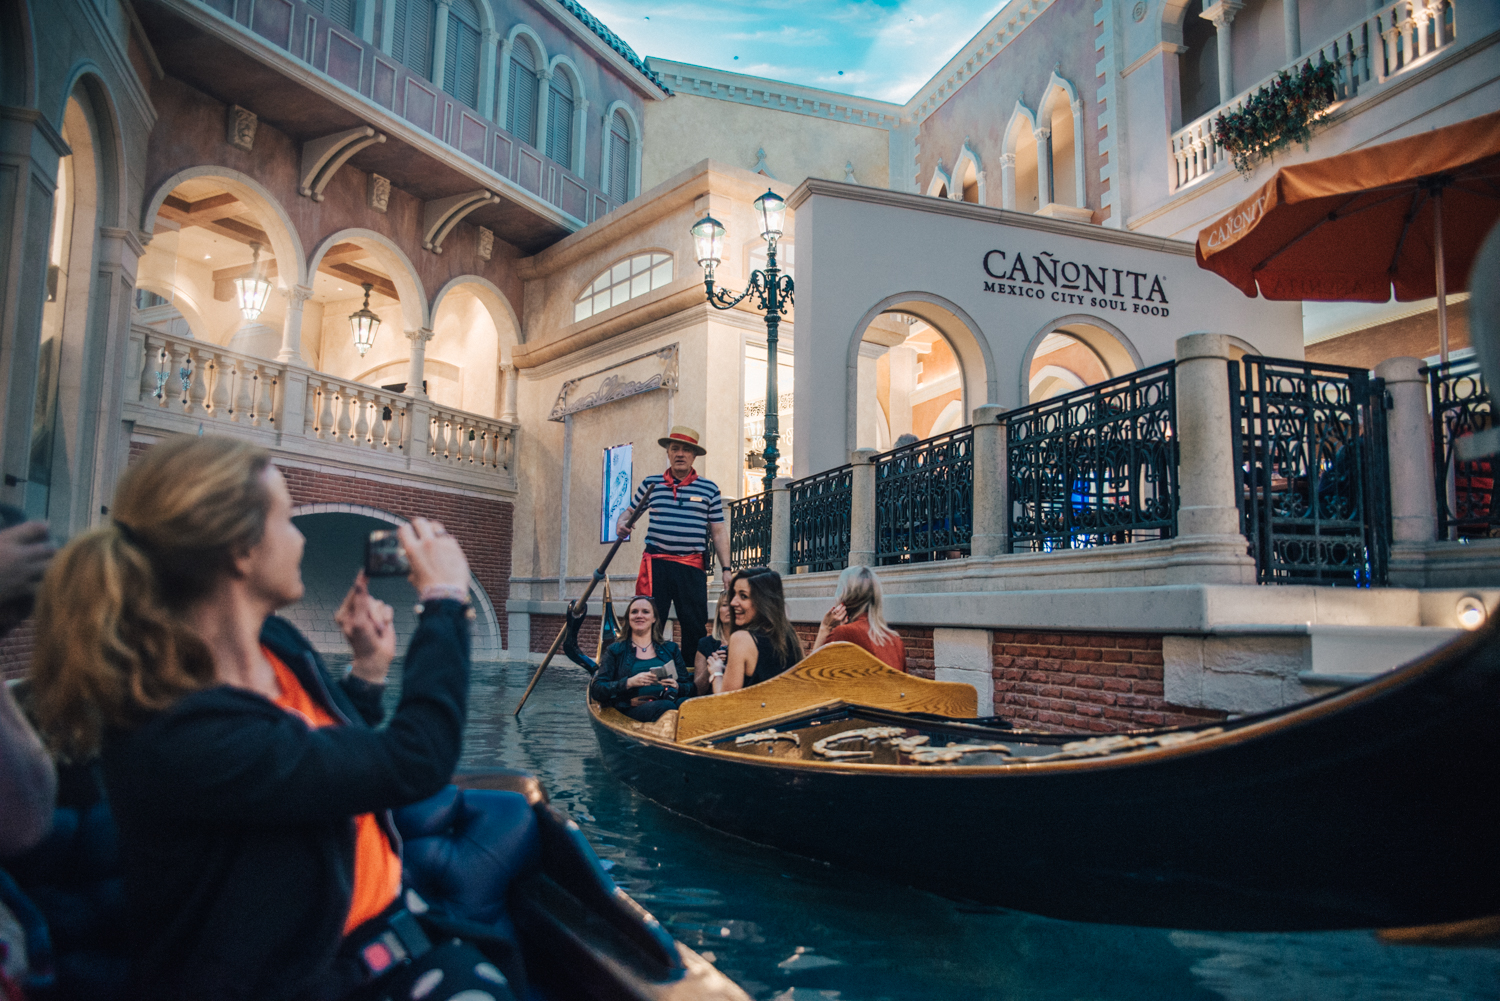 Gondola Ride at the Venetian - Grand Canal Shoppes